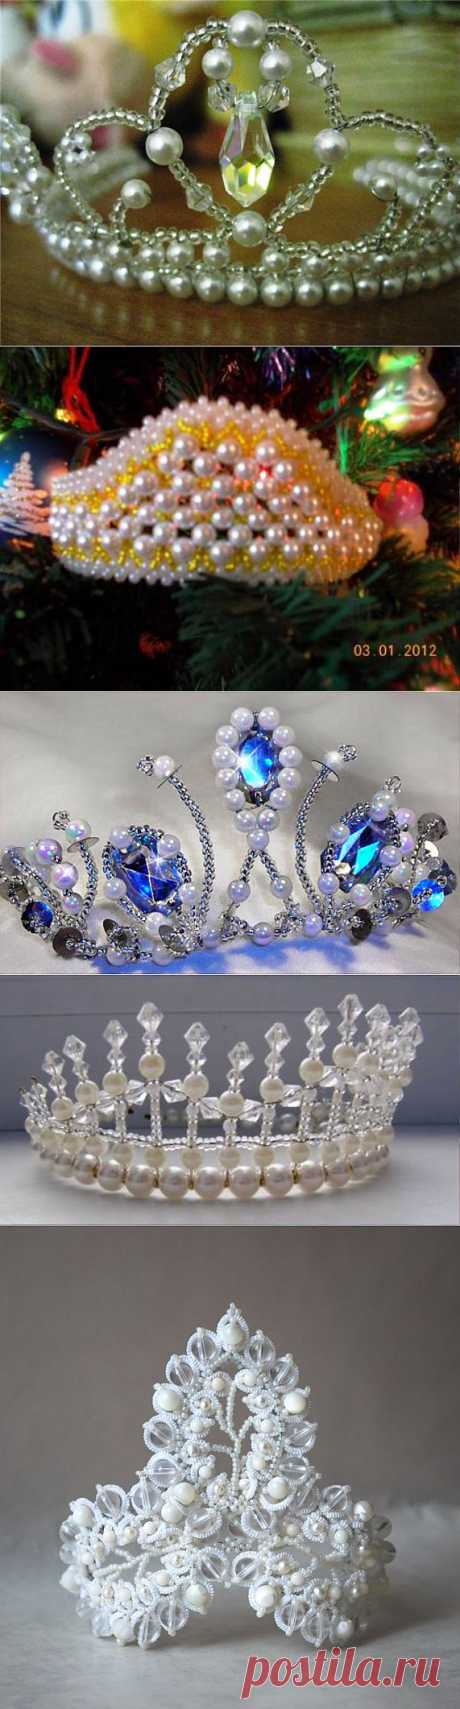 We spin diadems and crowns....